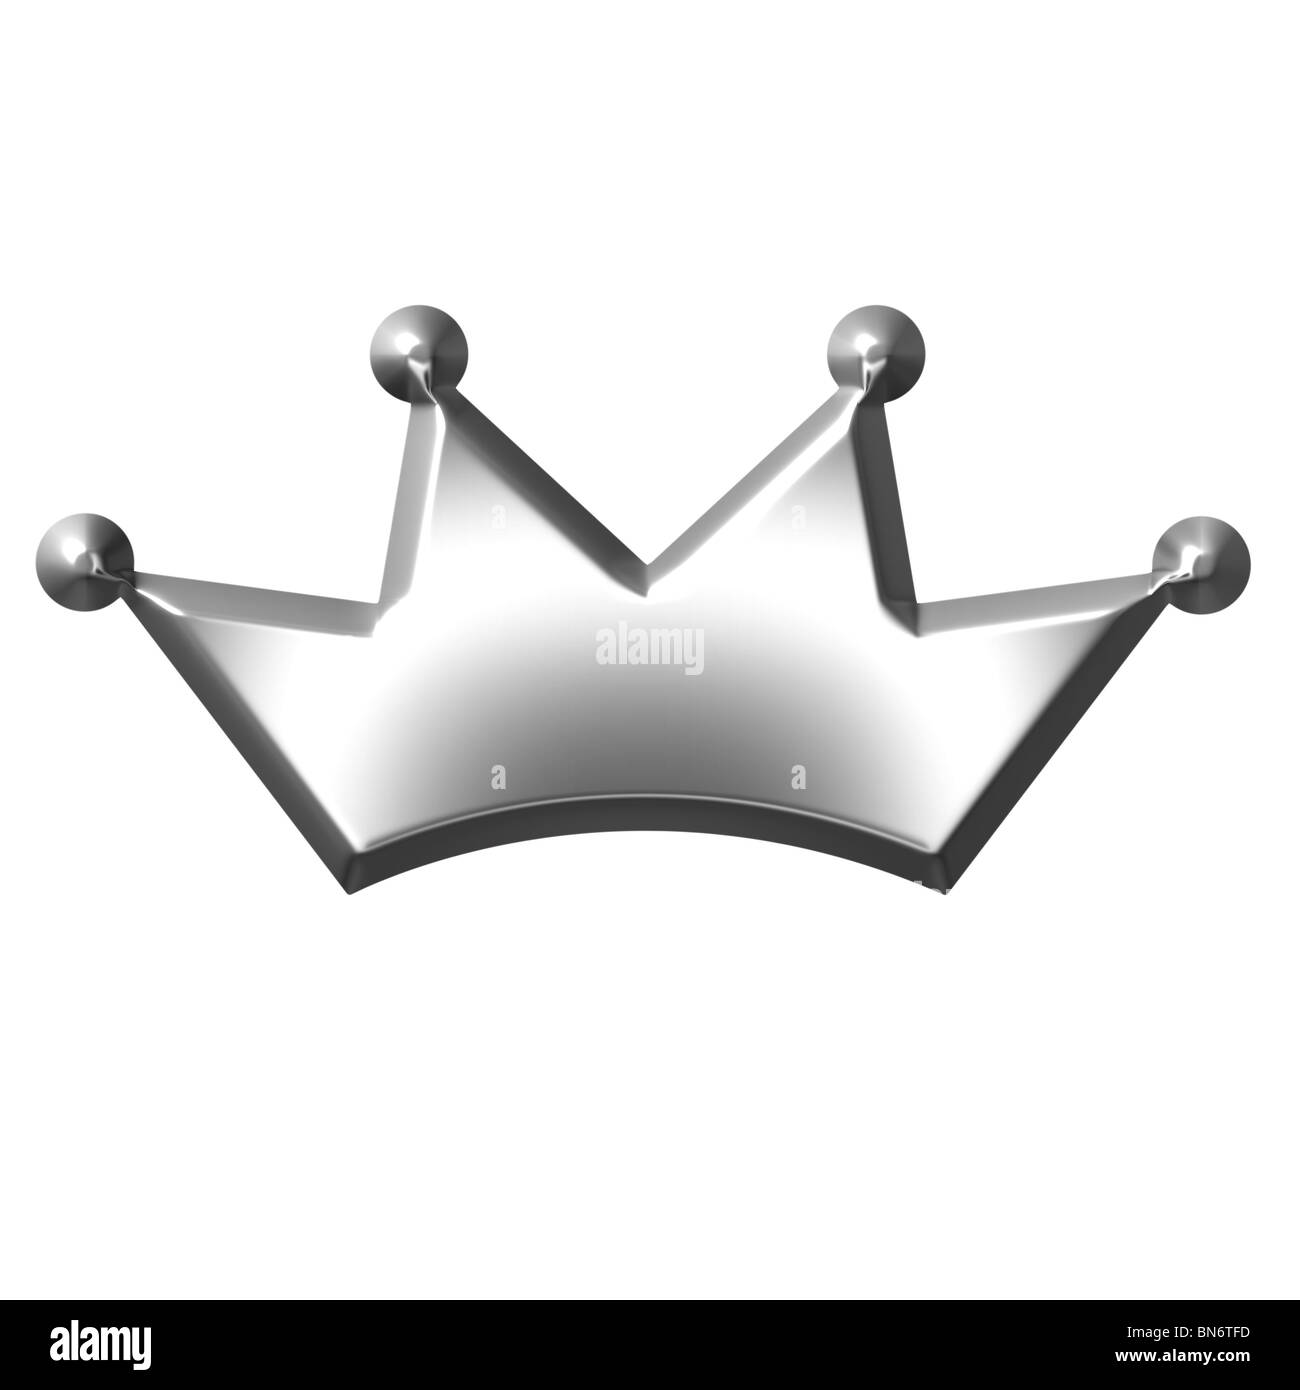 3d silver crown - Stock Image